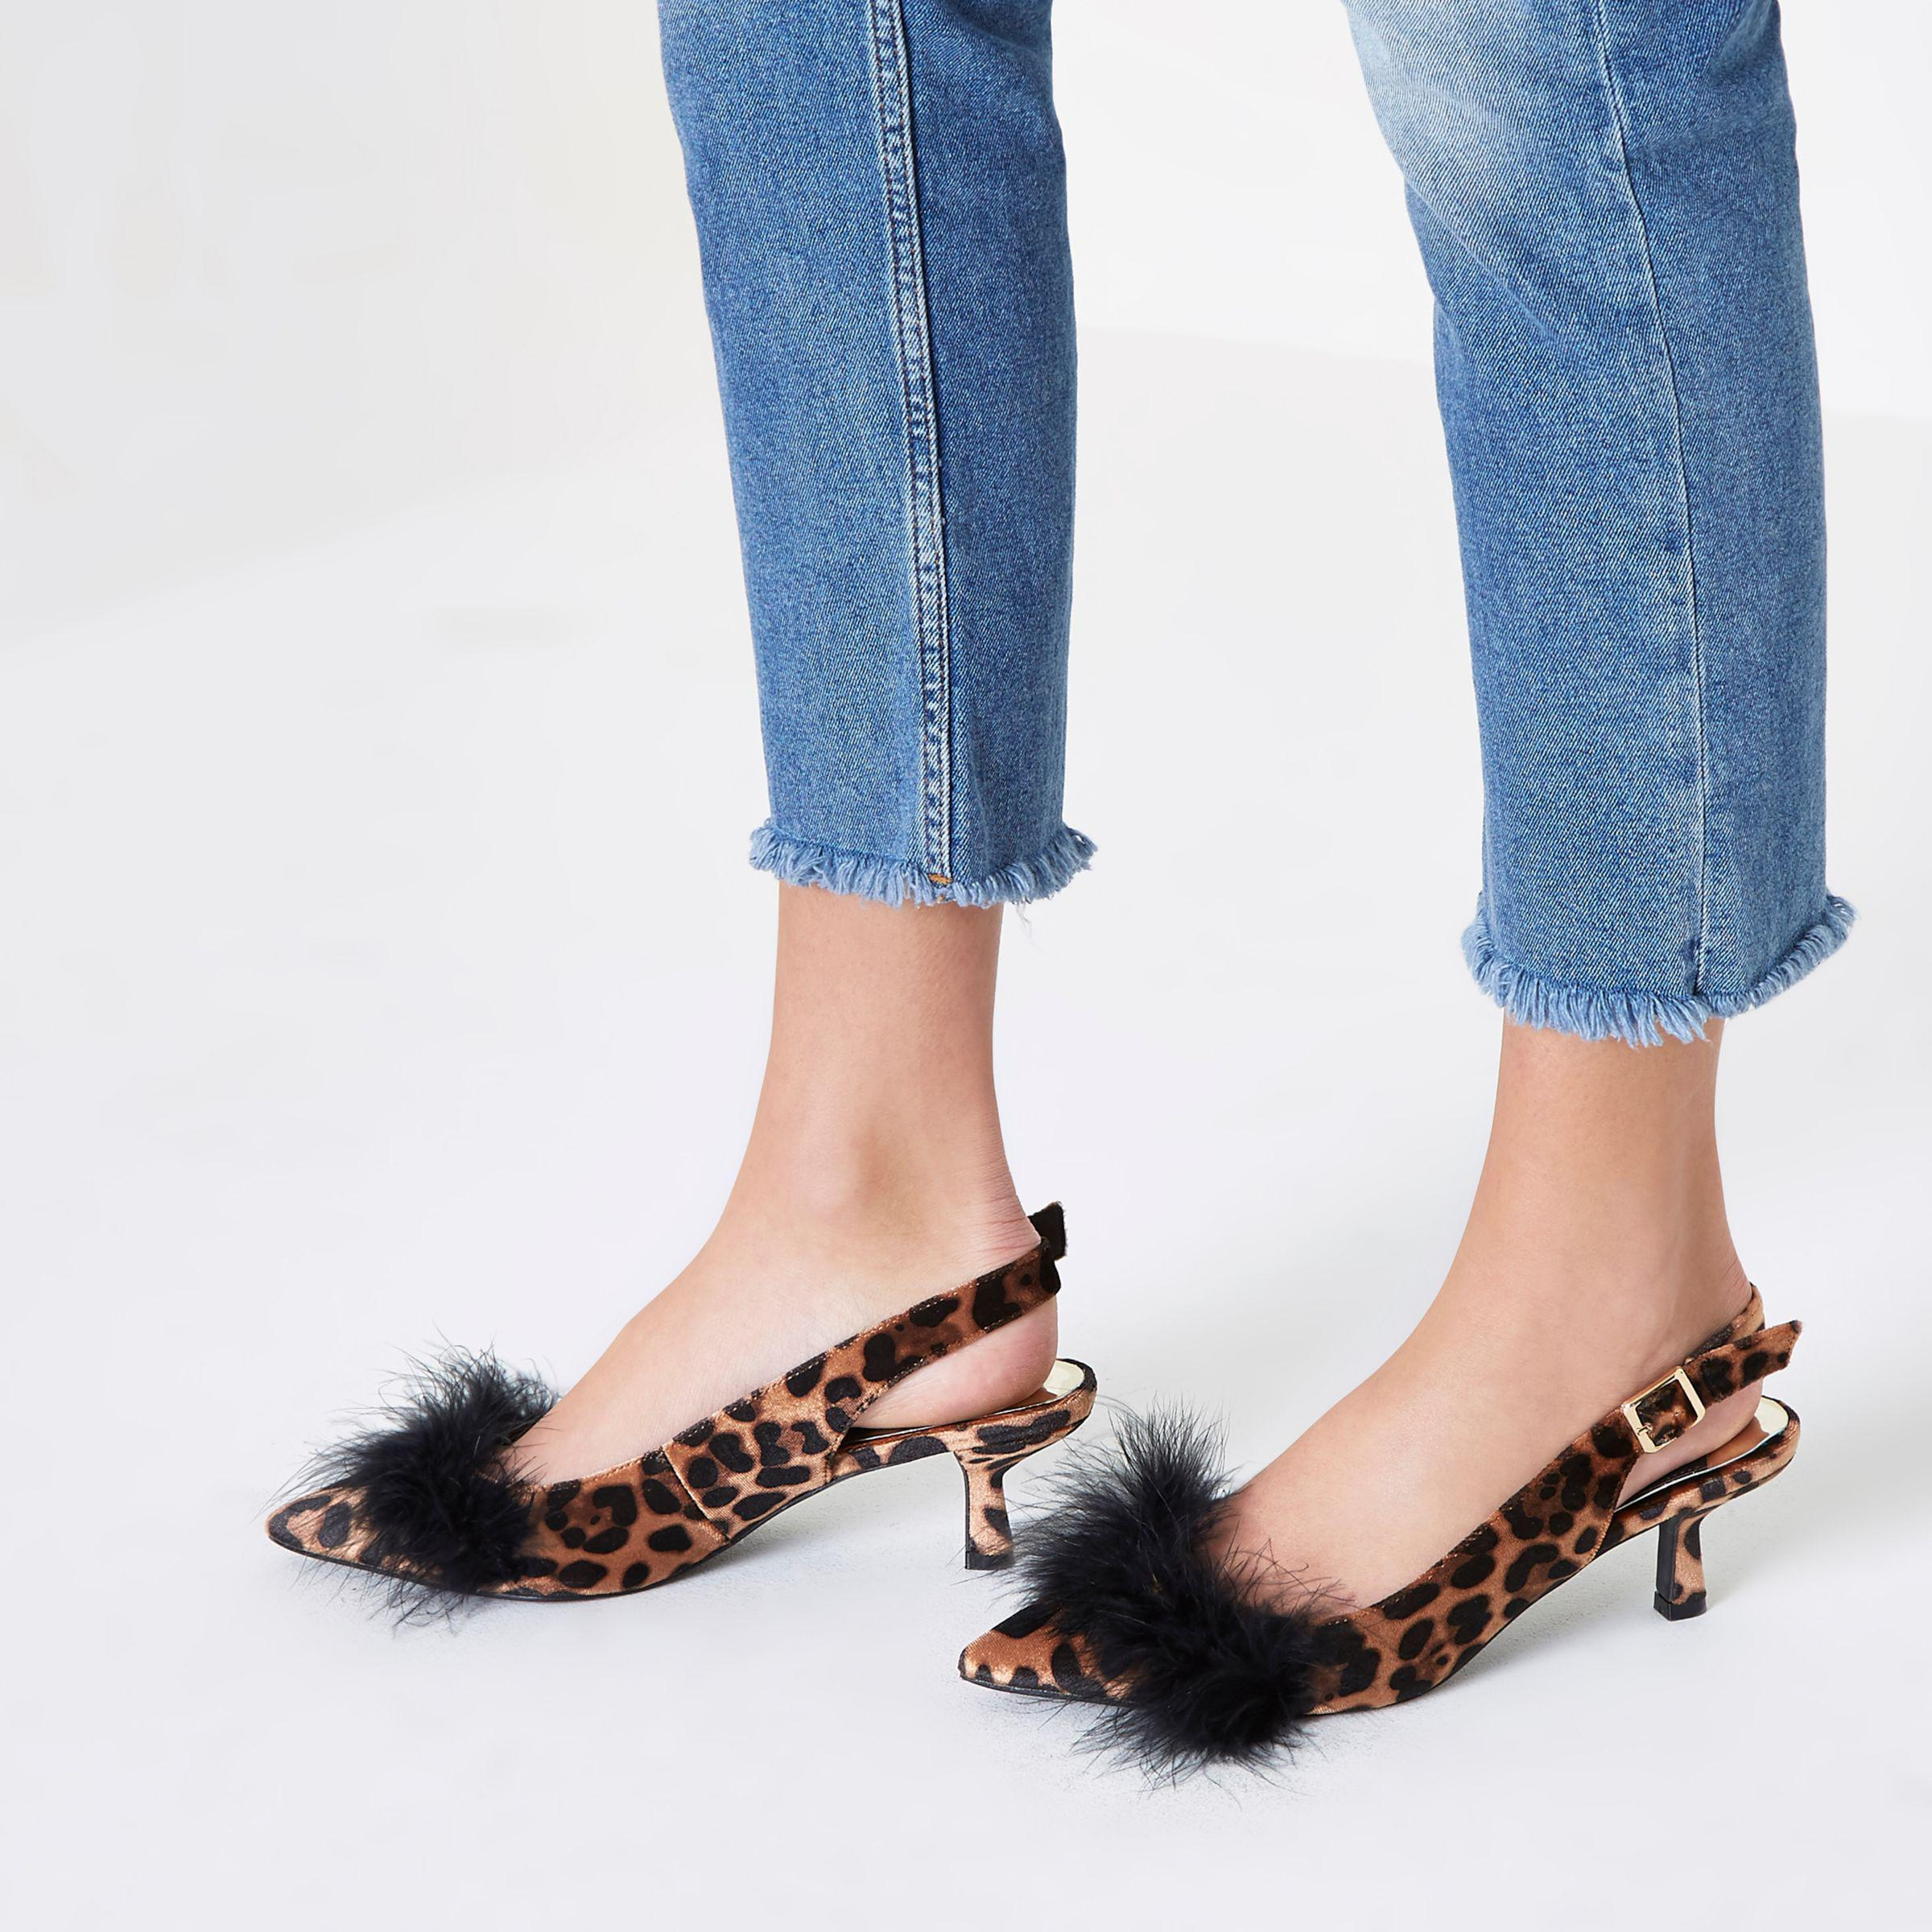 74293b4b1e2e River Island Brown Leopard Print Slingback Kitten Heels in Brown - Lyst